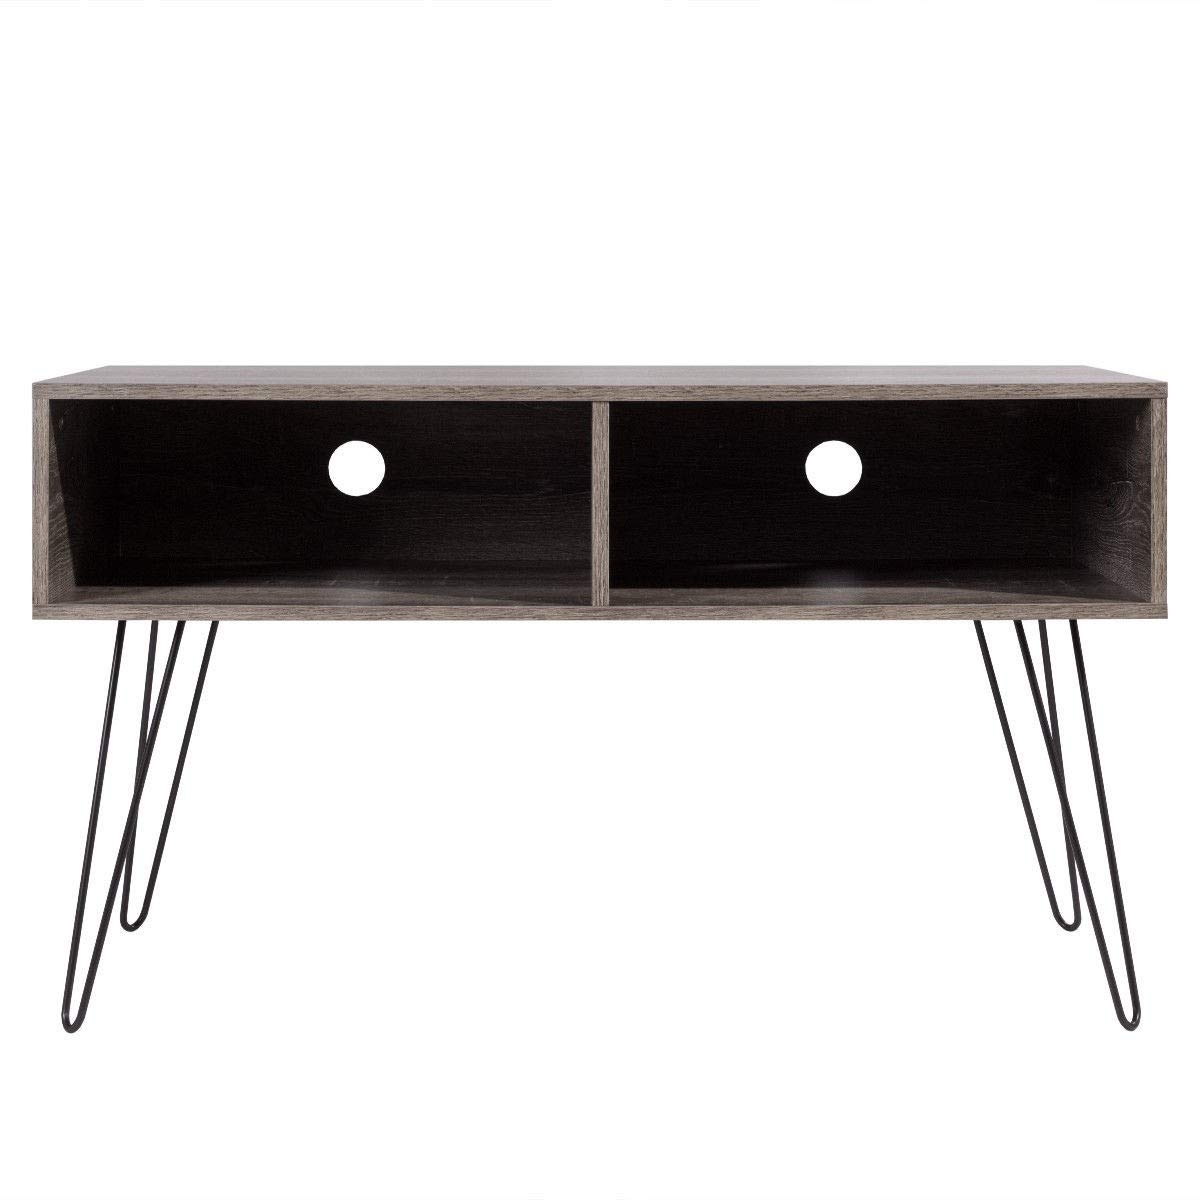 KING77777 Retro and Modern Design Style 42'' TV Stand Wood Media Console with Sturdy Metal Hairpin Legs by KING77777 (Image #2)